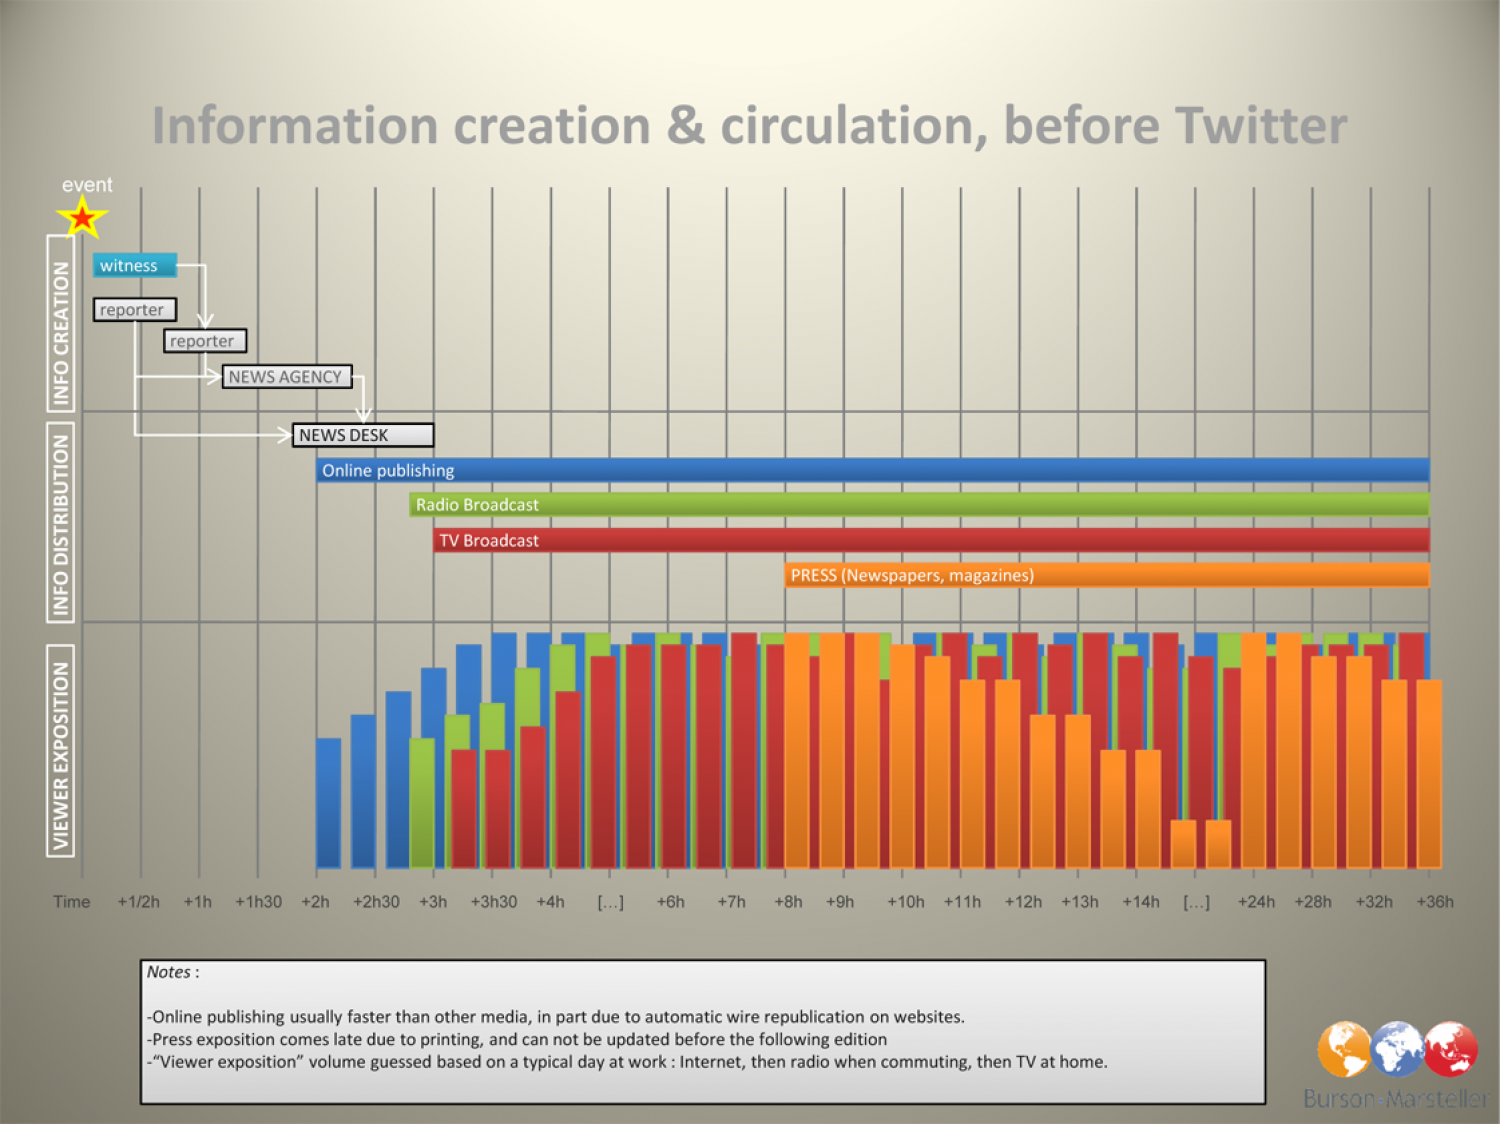 Before Twitter: The Spread of Information Infographic